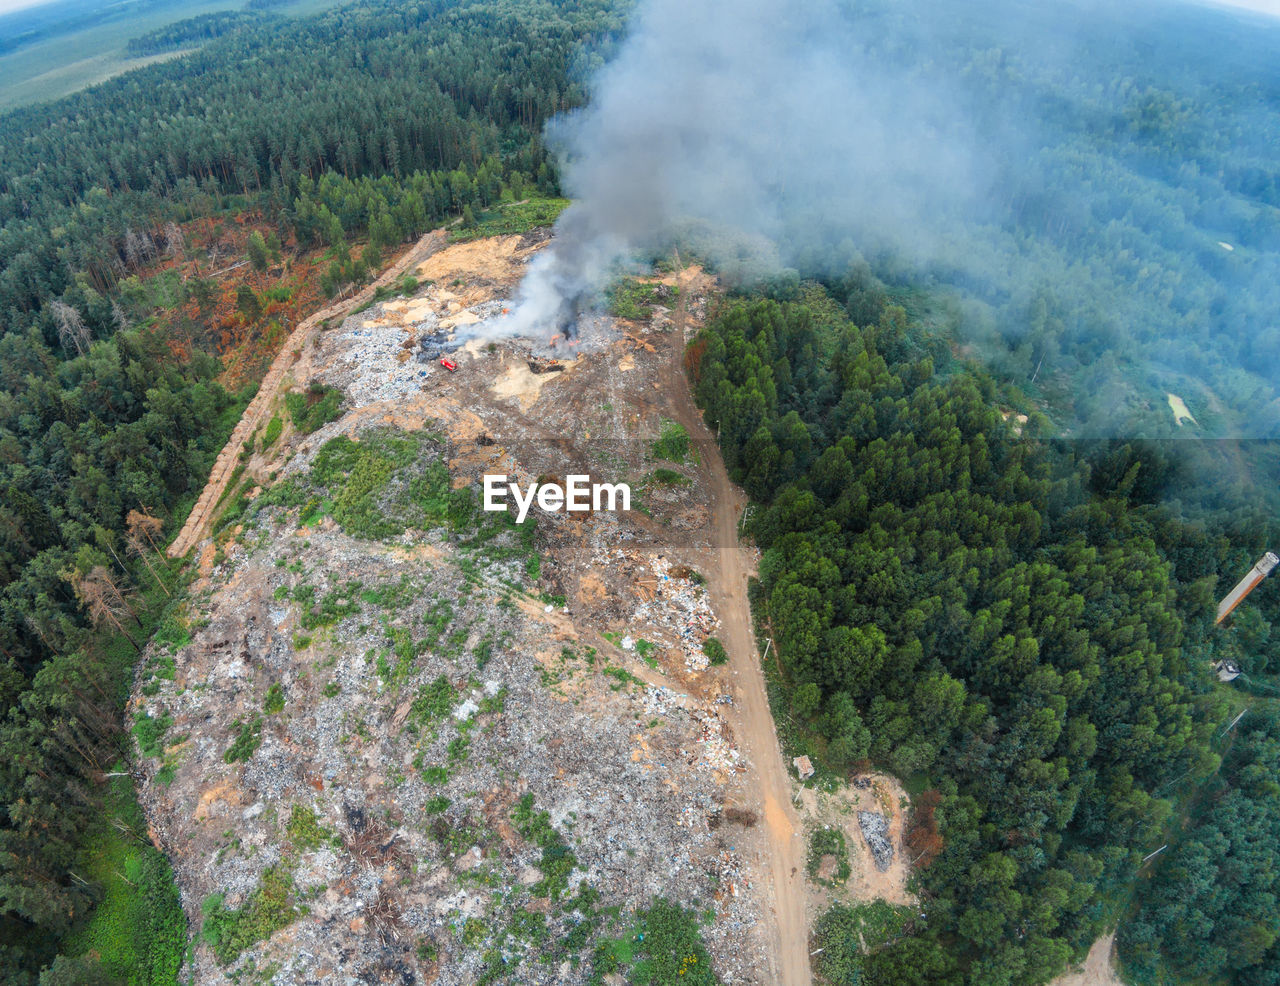 Aerial View Of Smoke Emitting From Mountain